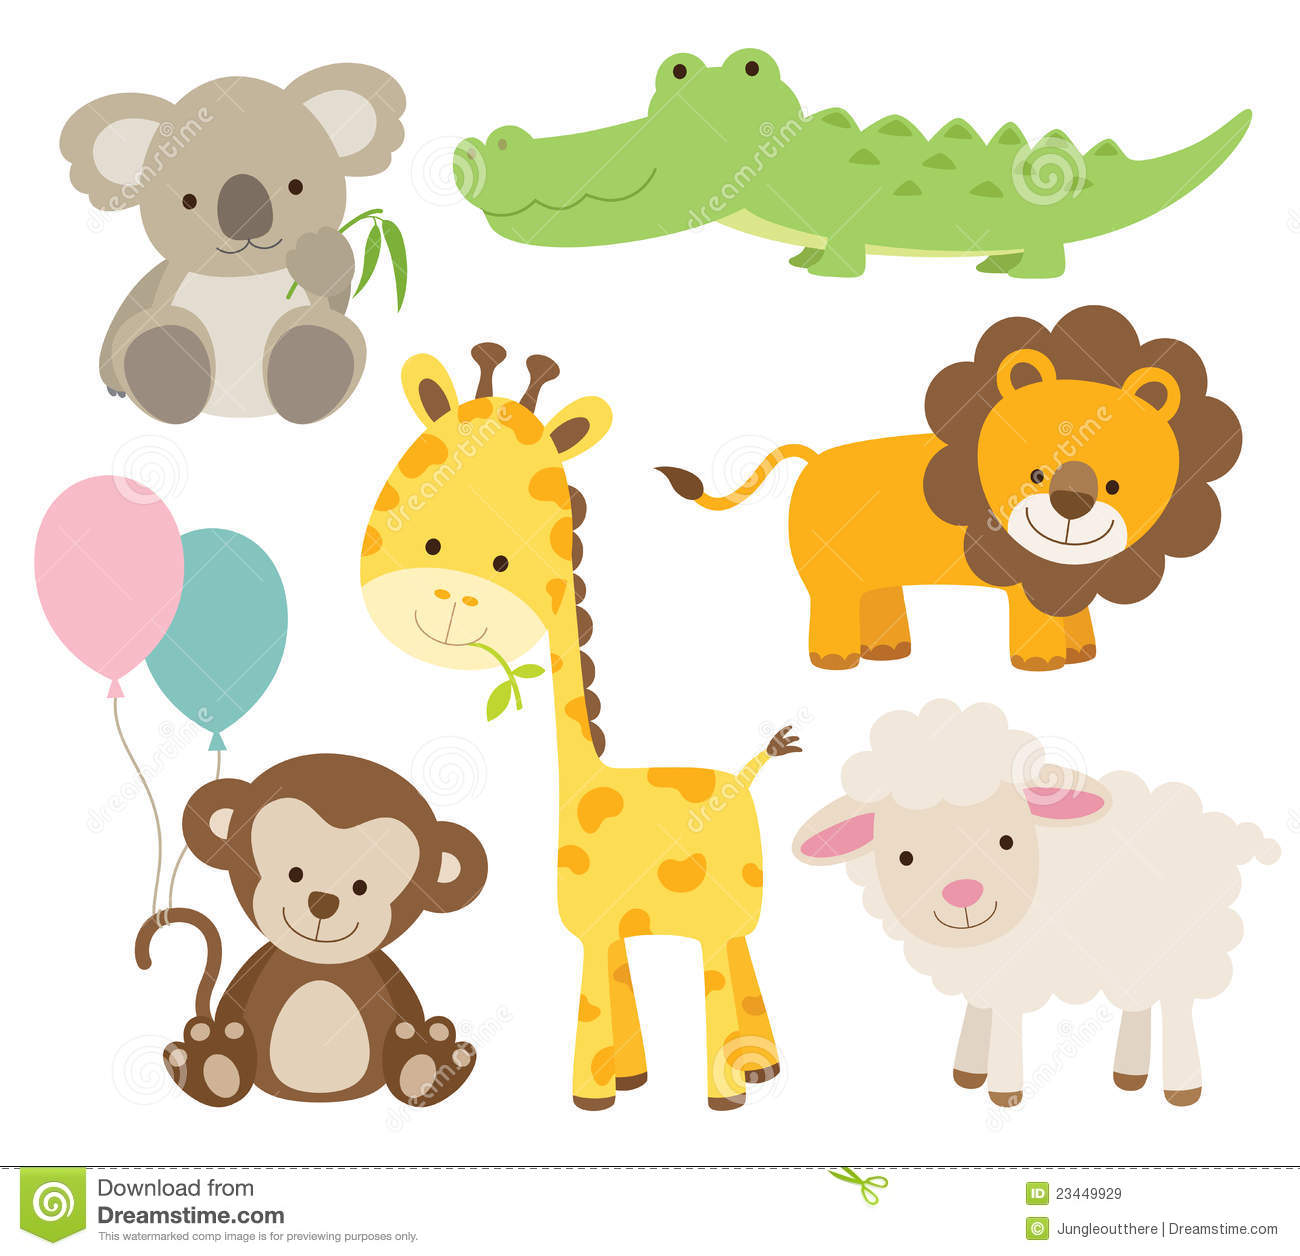 Baby Animal Clipart Images.